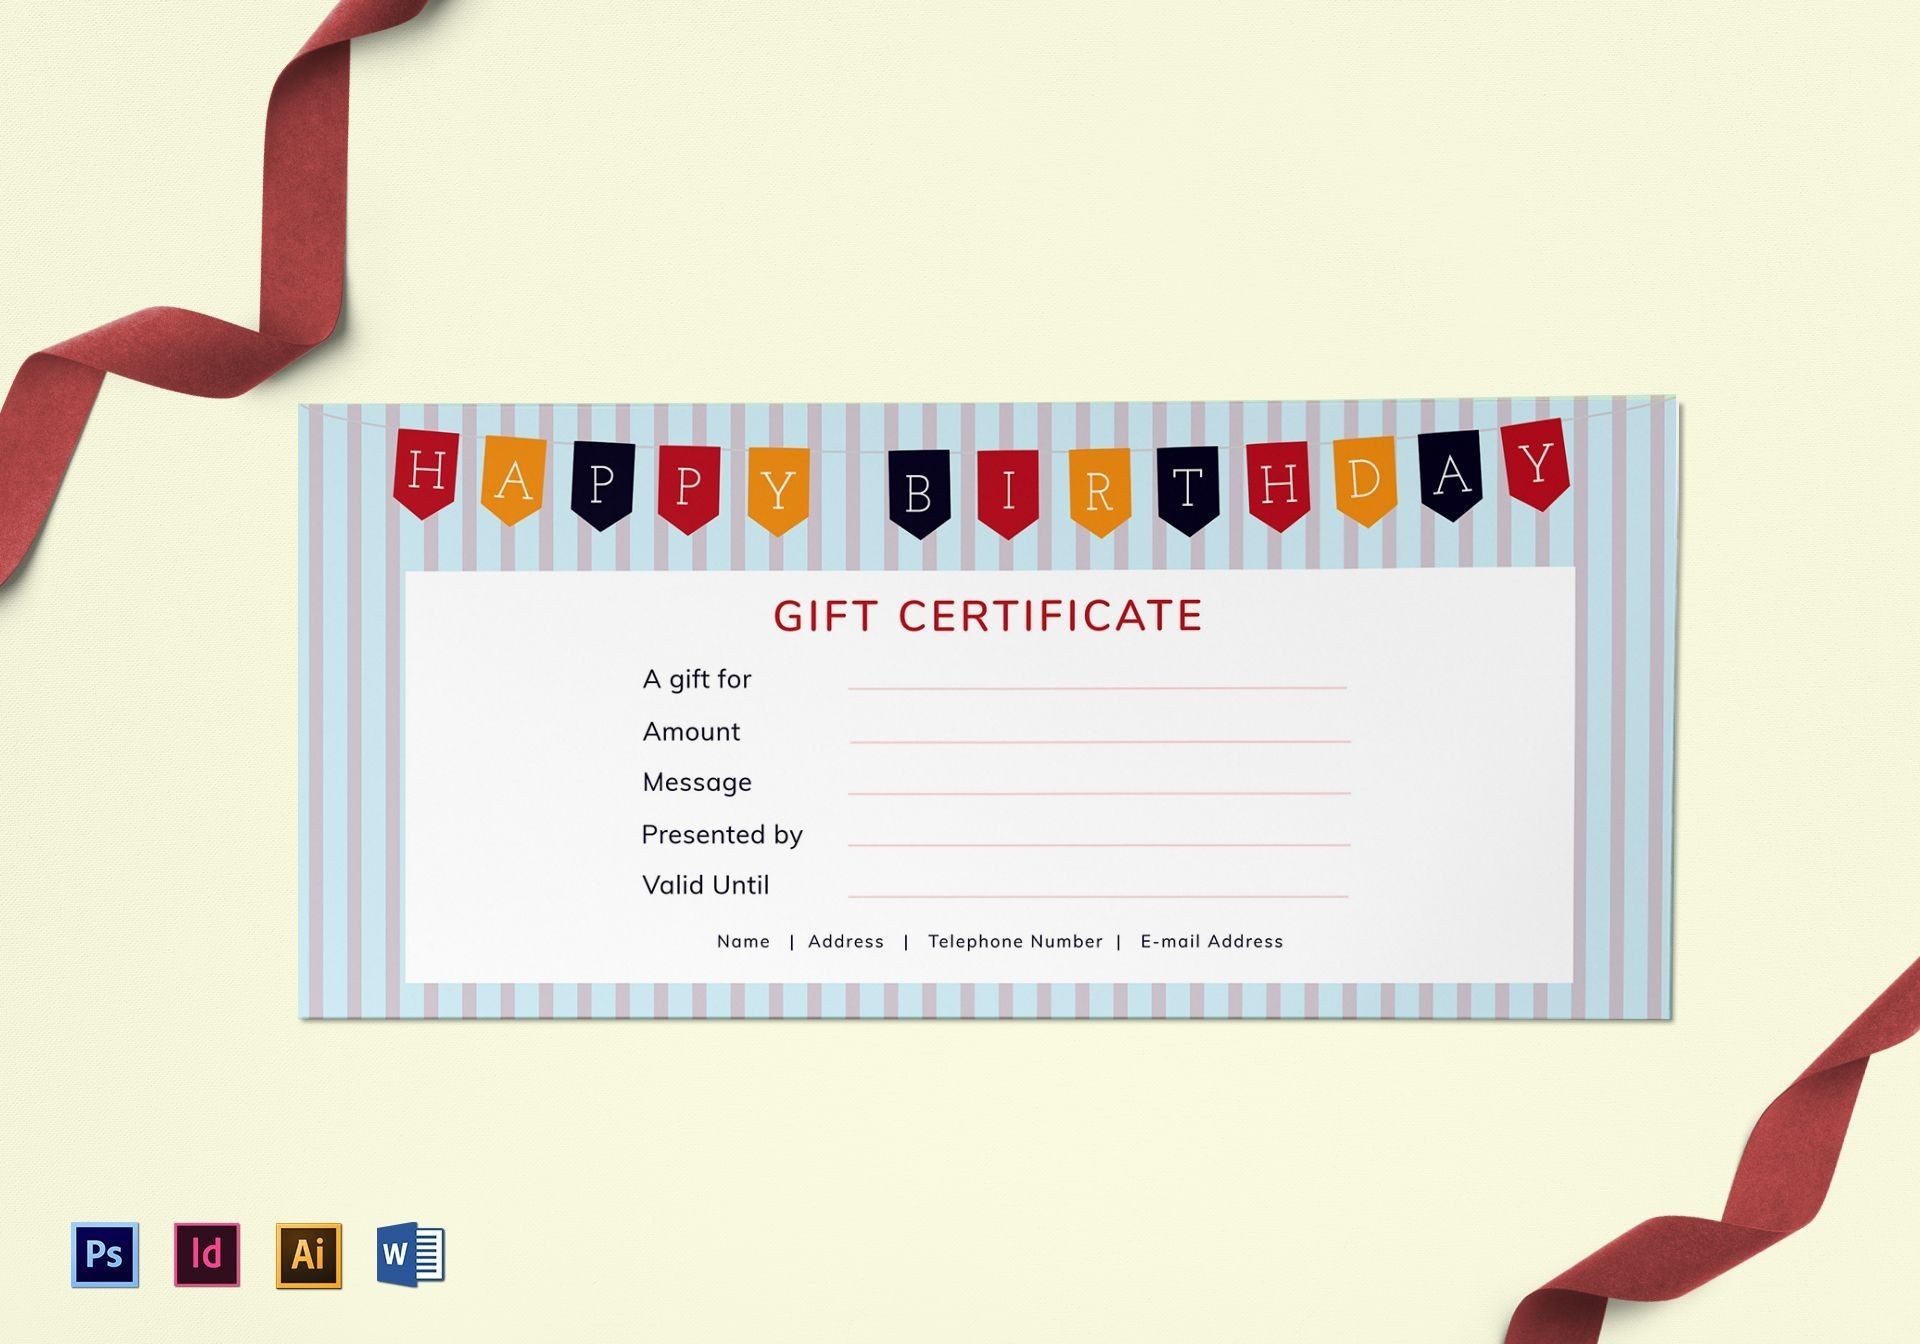 006 Awful Free Printable Birthday Gift Voucher Template High Definition 1920